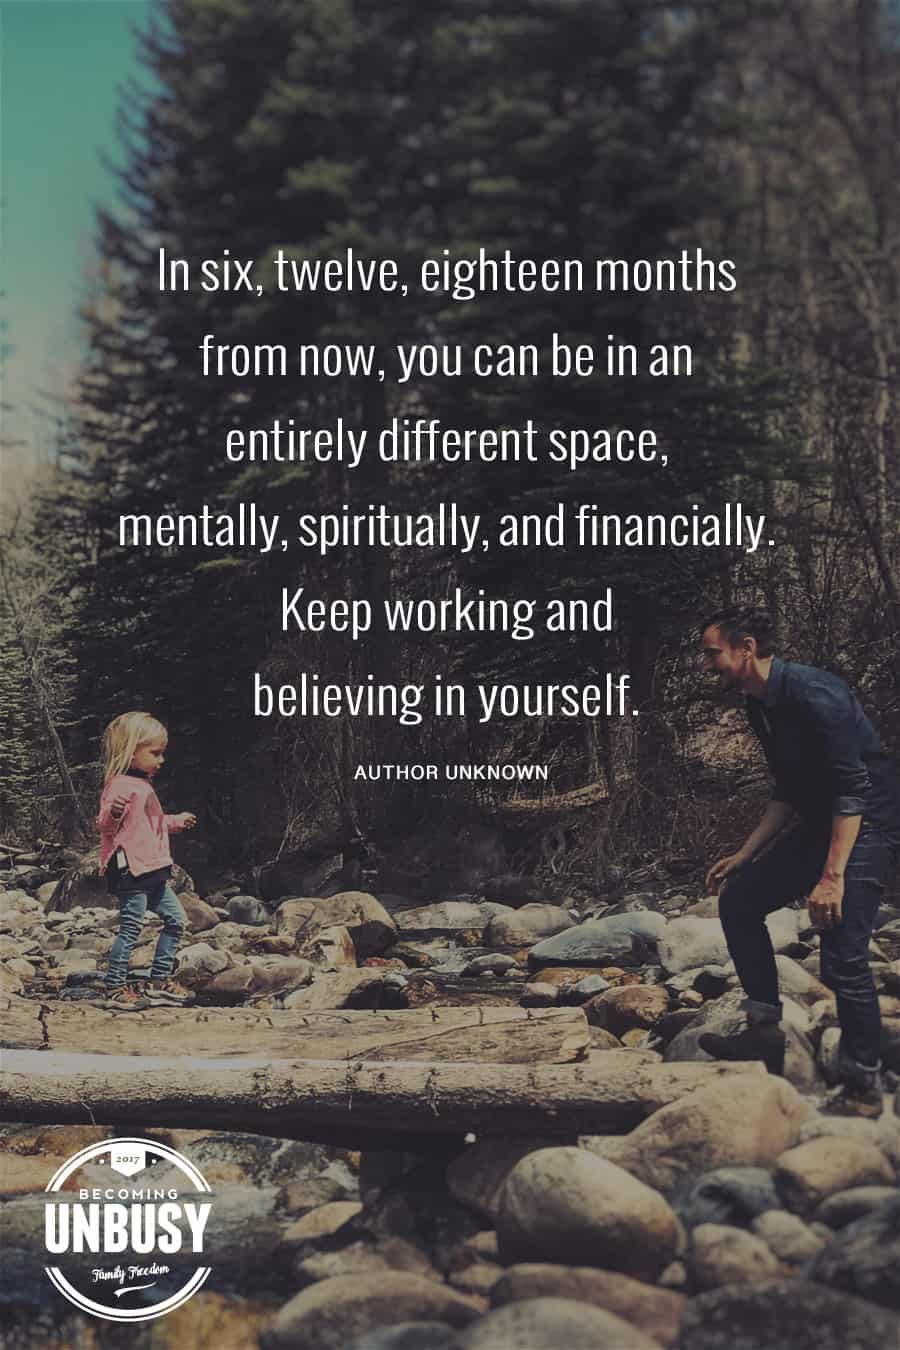 In six months from now you can be in an entirely different space, mentally, spiritually, and financially. Keep working and believing in yourself.